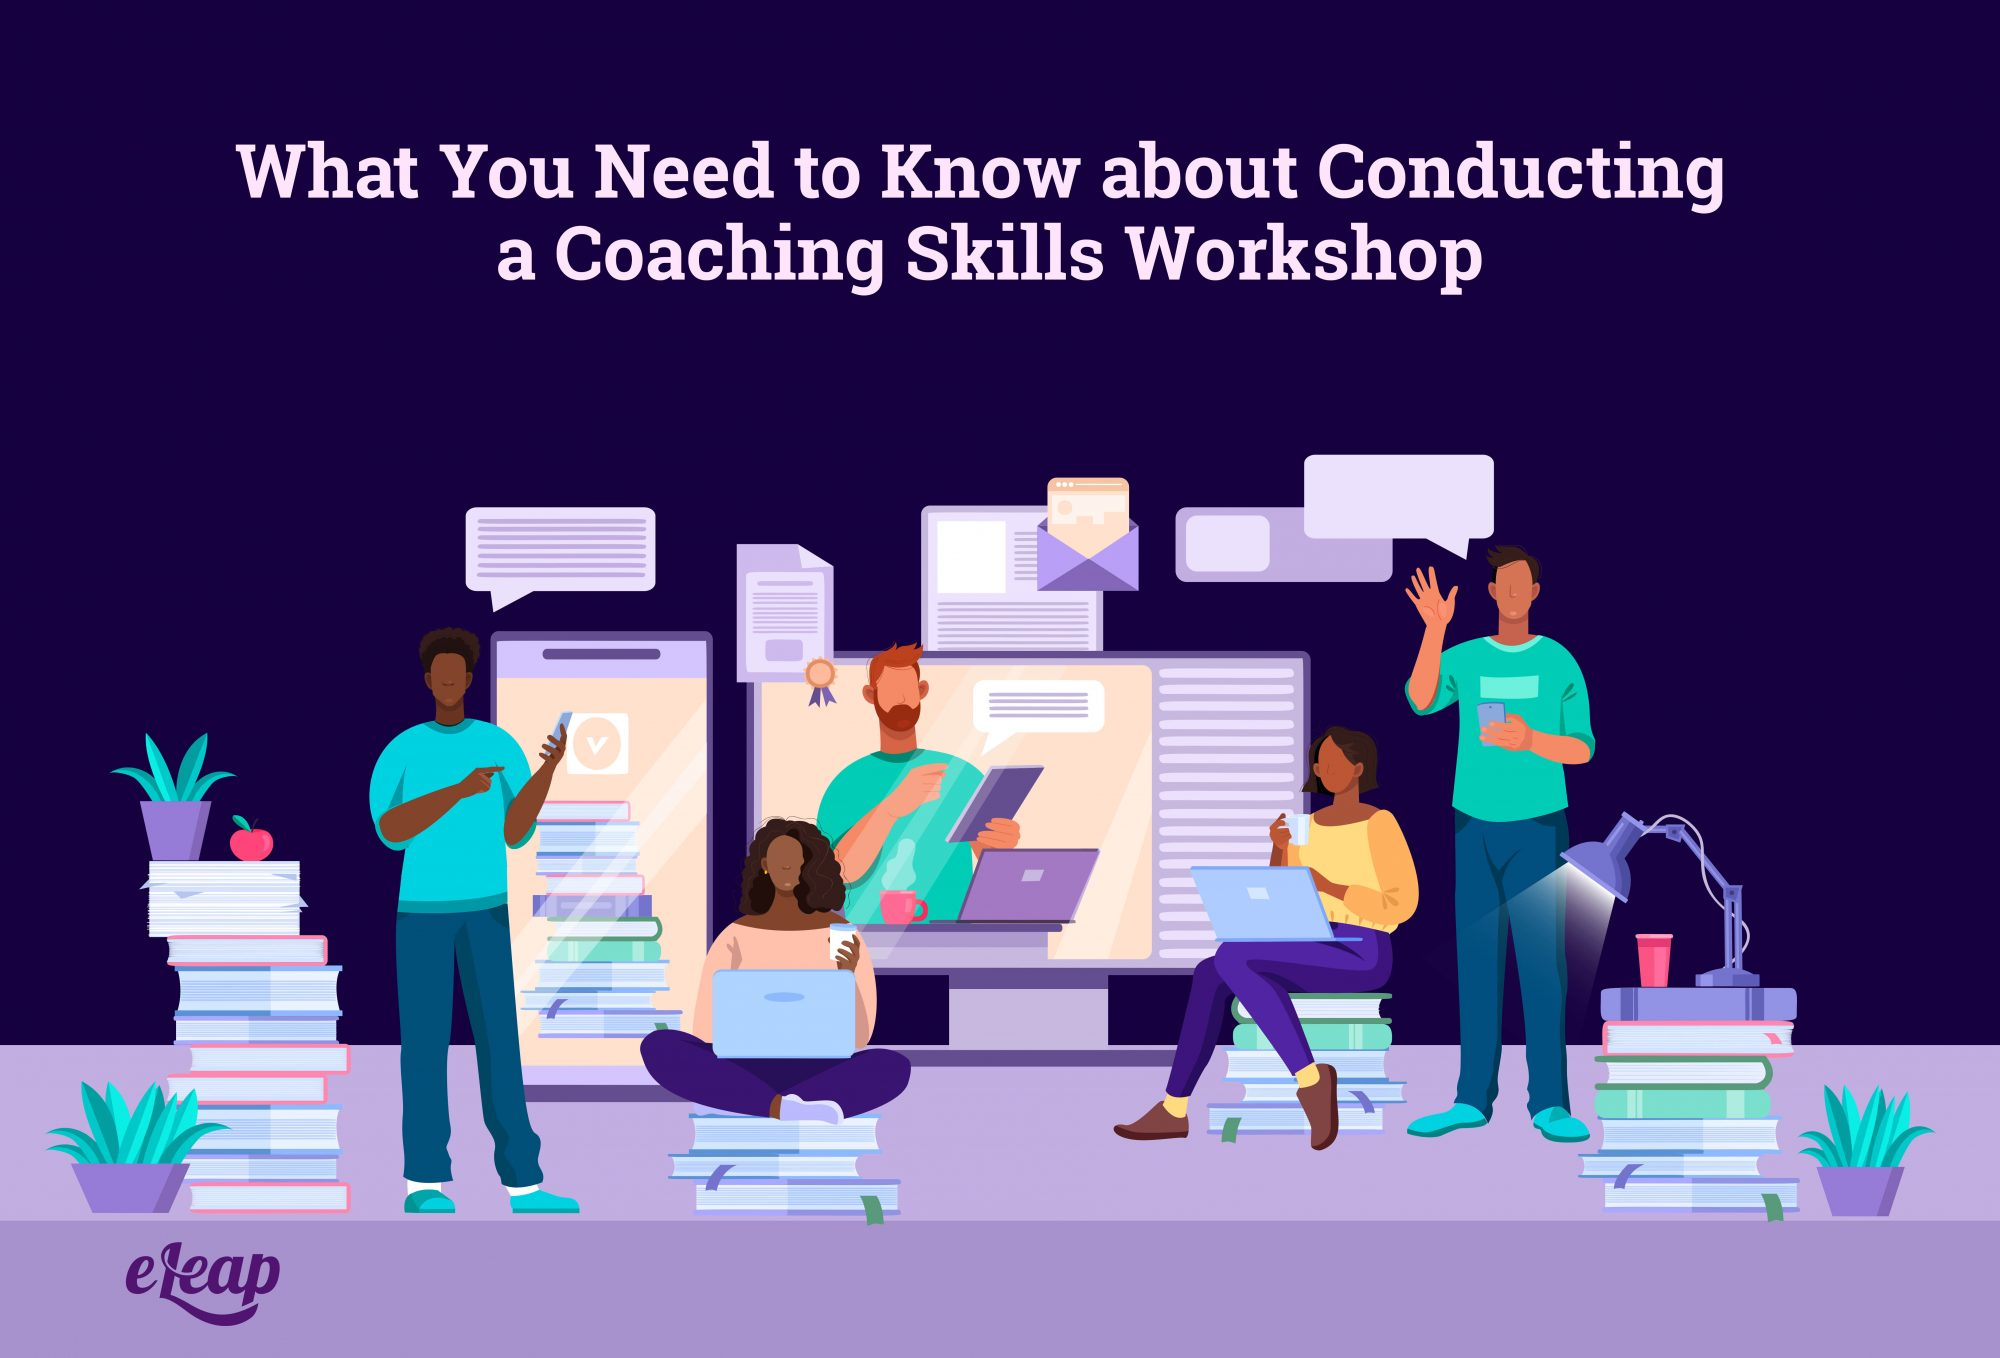 What You Need to Know about Conducting a Coaching Skills Workshop